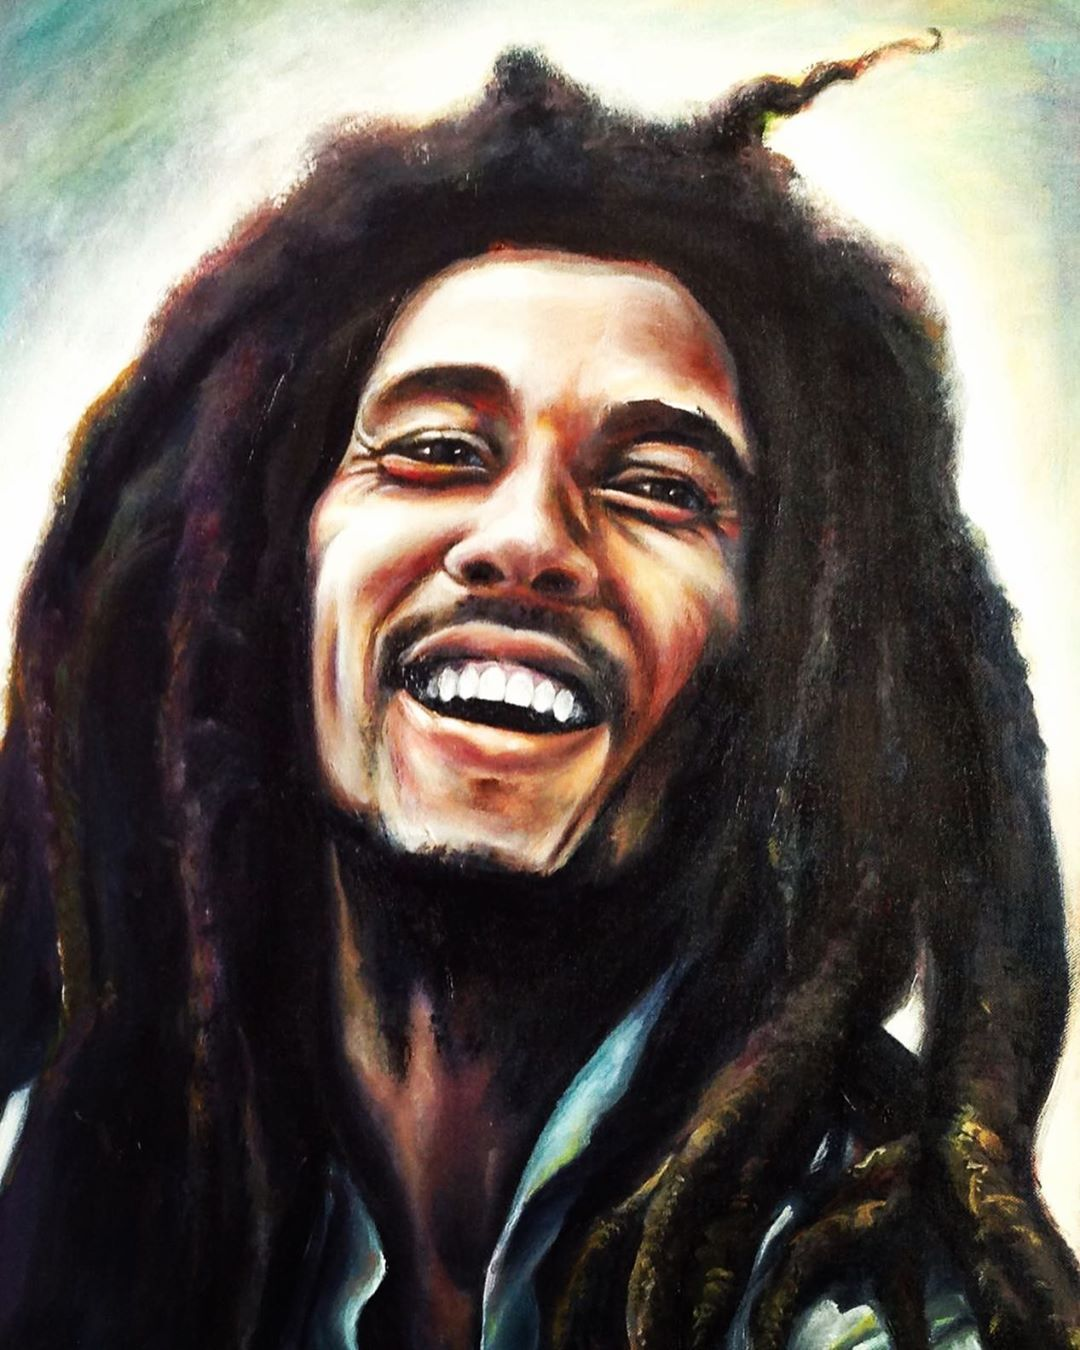 One love one heart lets get together and feel alright